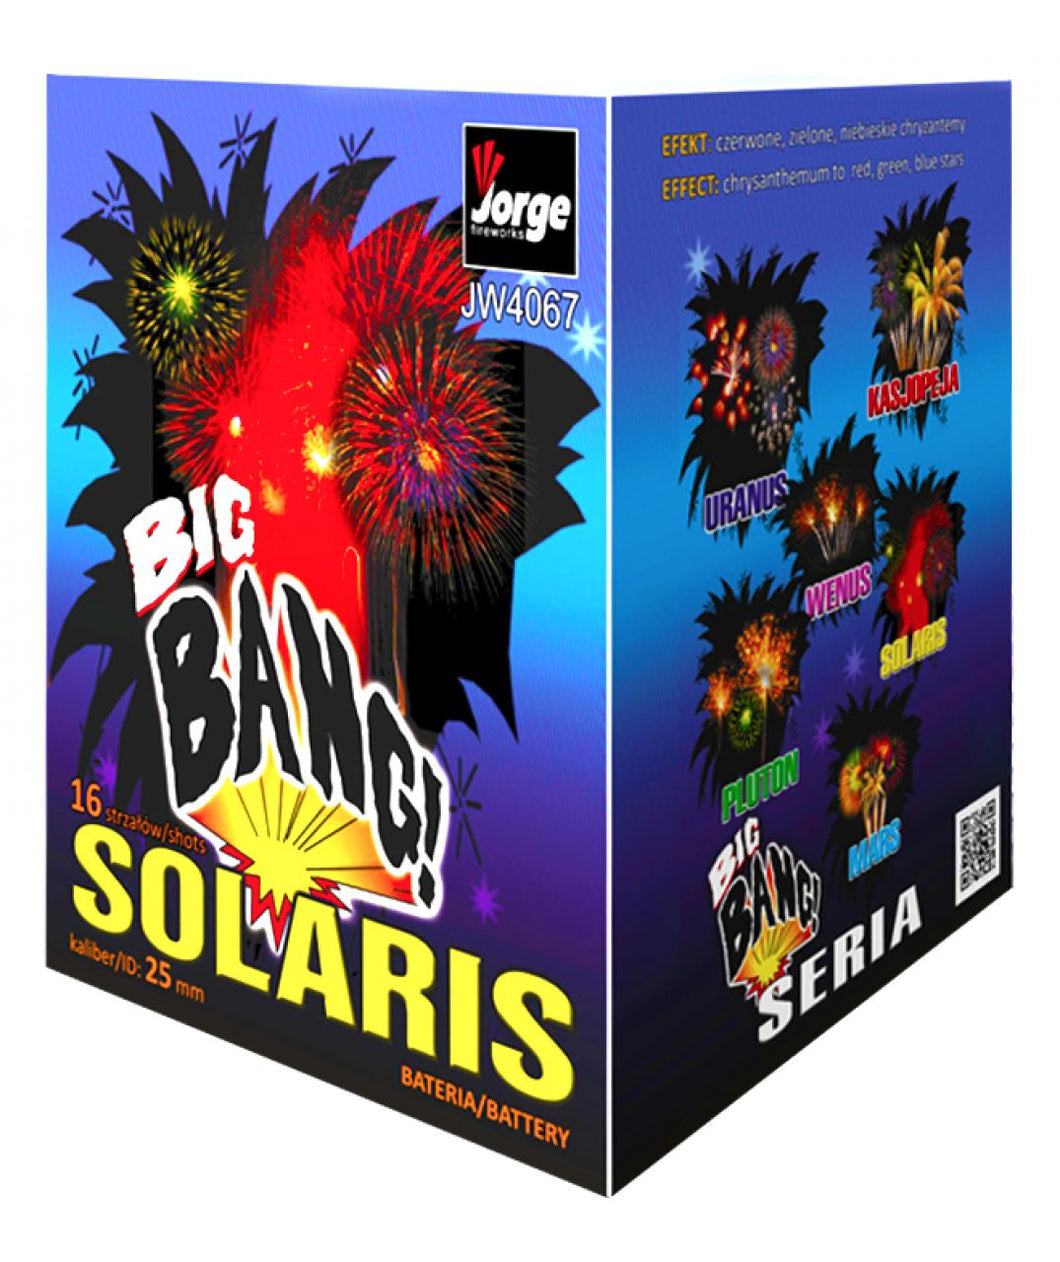 Big Bang Solaris - 16 shot barrage - BUY 1 GET 1 FREE